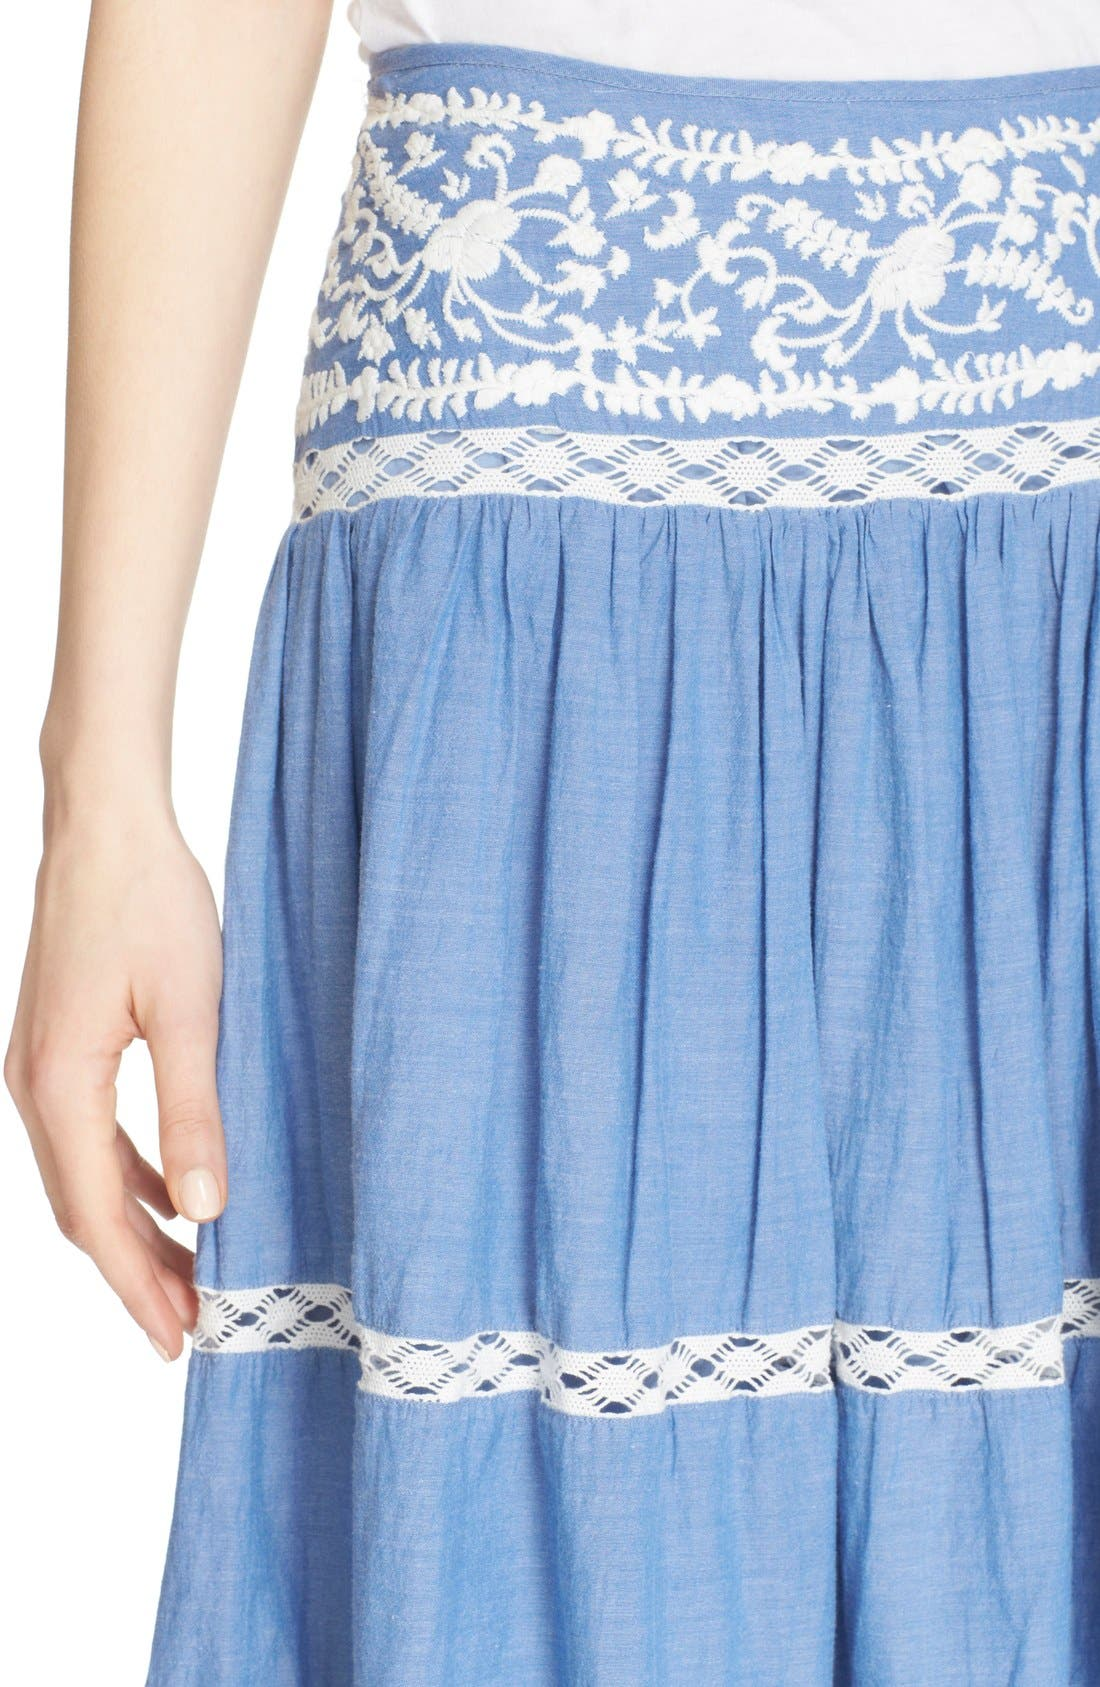 Alternate Image 4  - Joie Embroidered Chambray Skirt